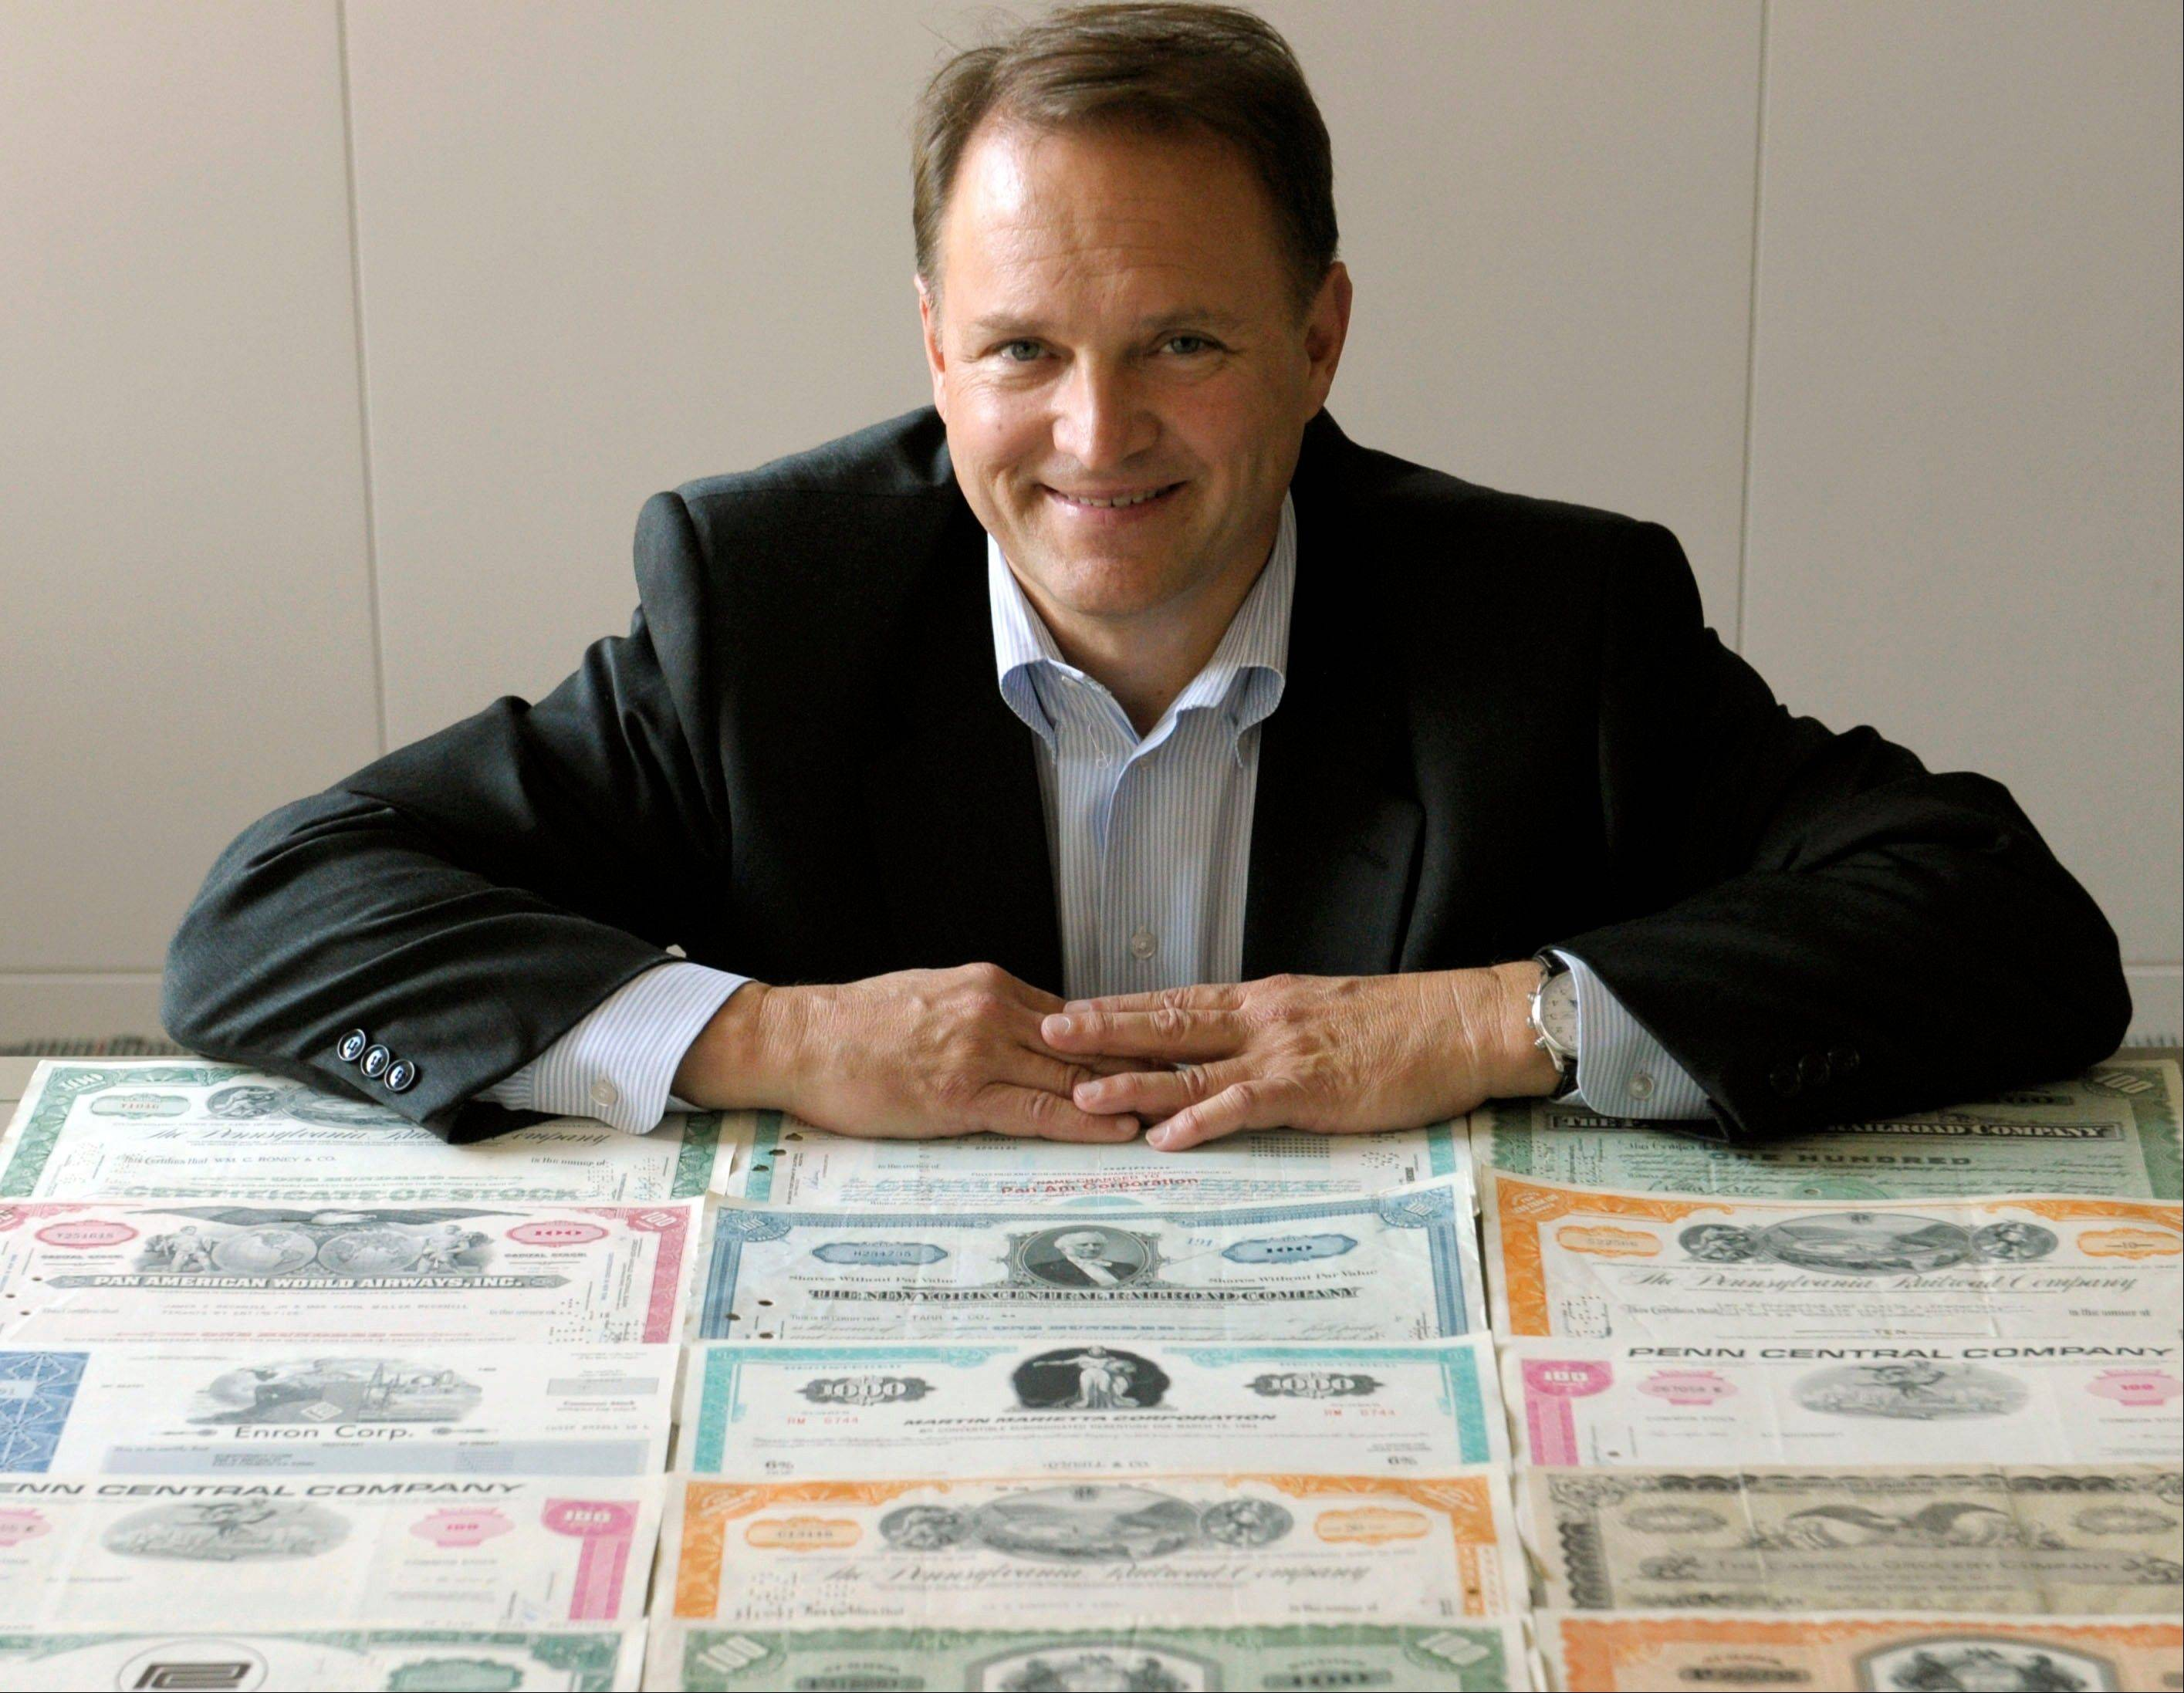 Tom Carroll poses for a portrait with his collection of paper stocks in Washington. At a time when most stock trading is powered by rapid-fire computers, some relish paper stocks for their palpability.